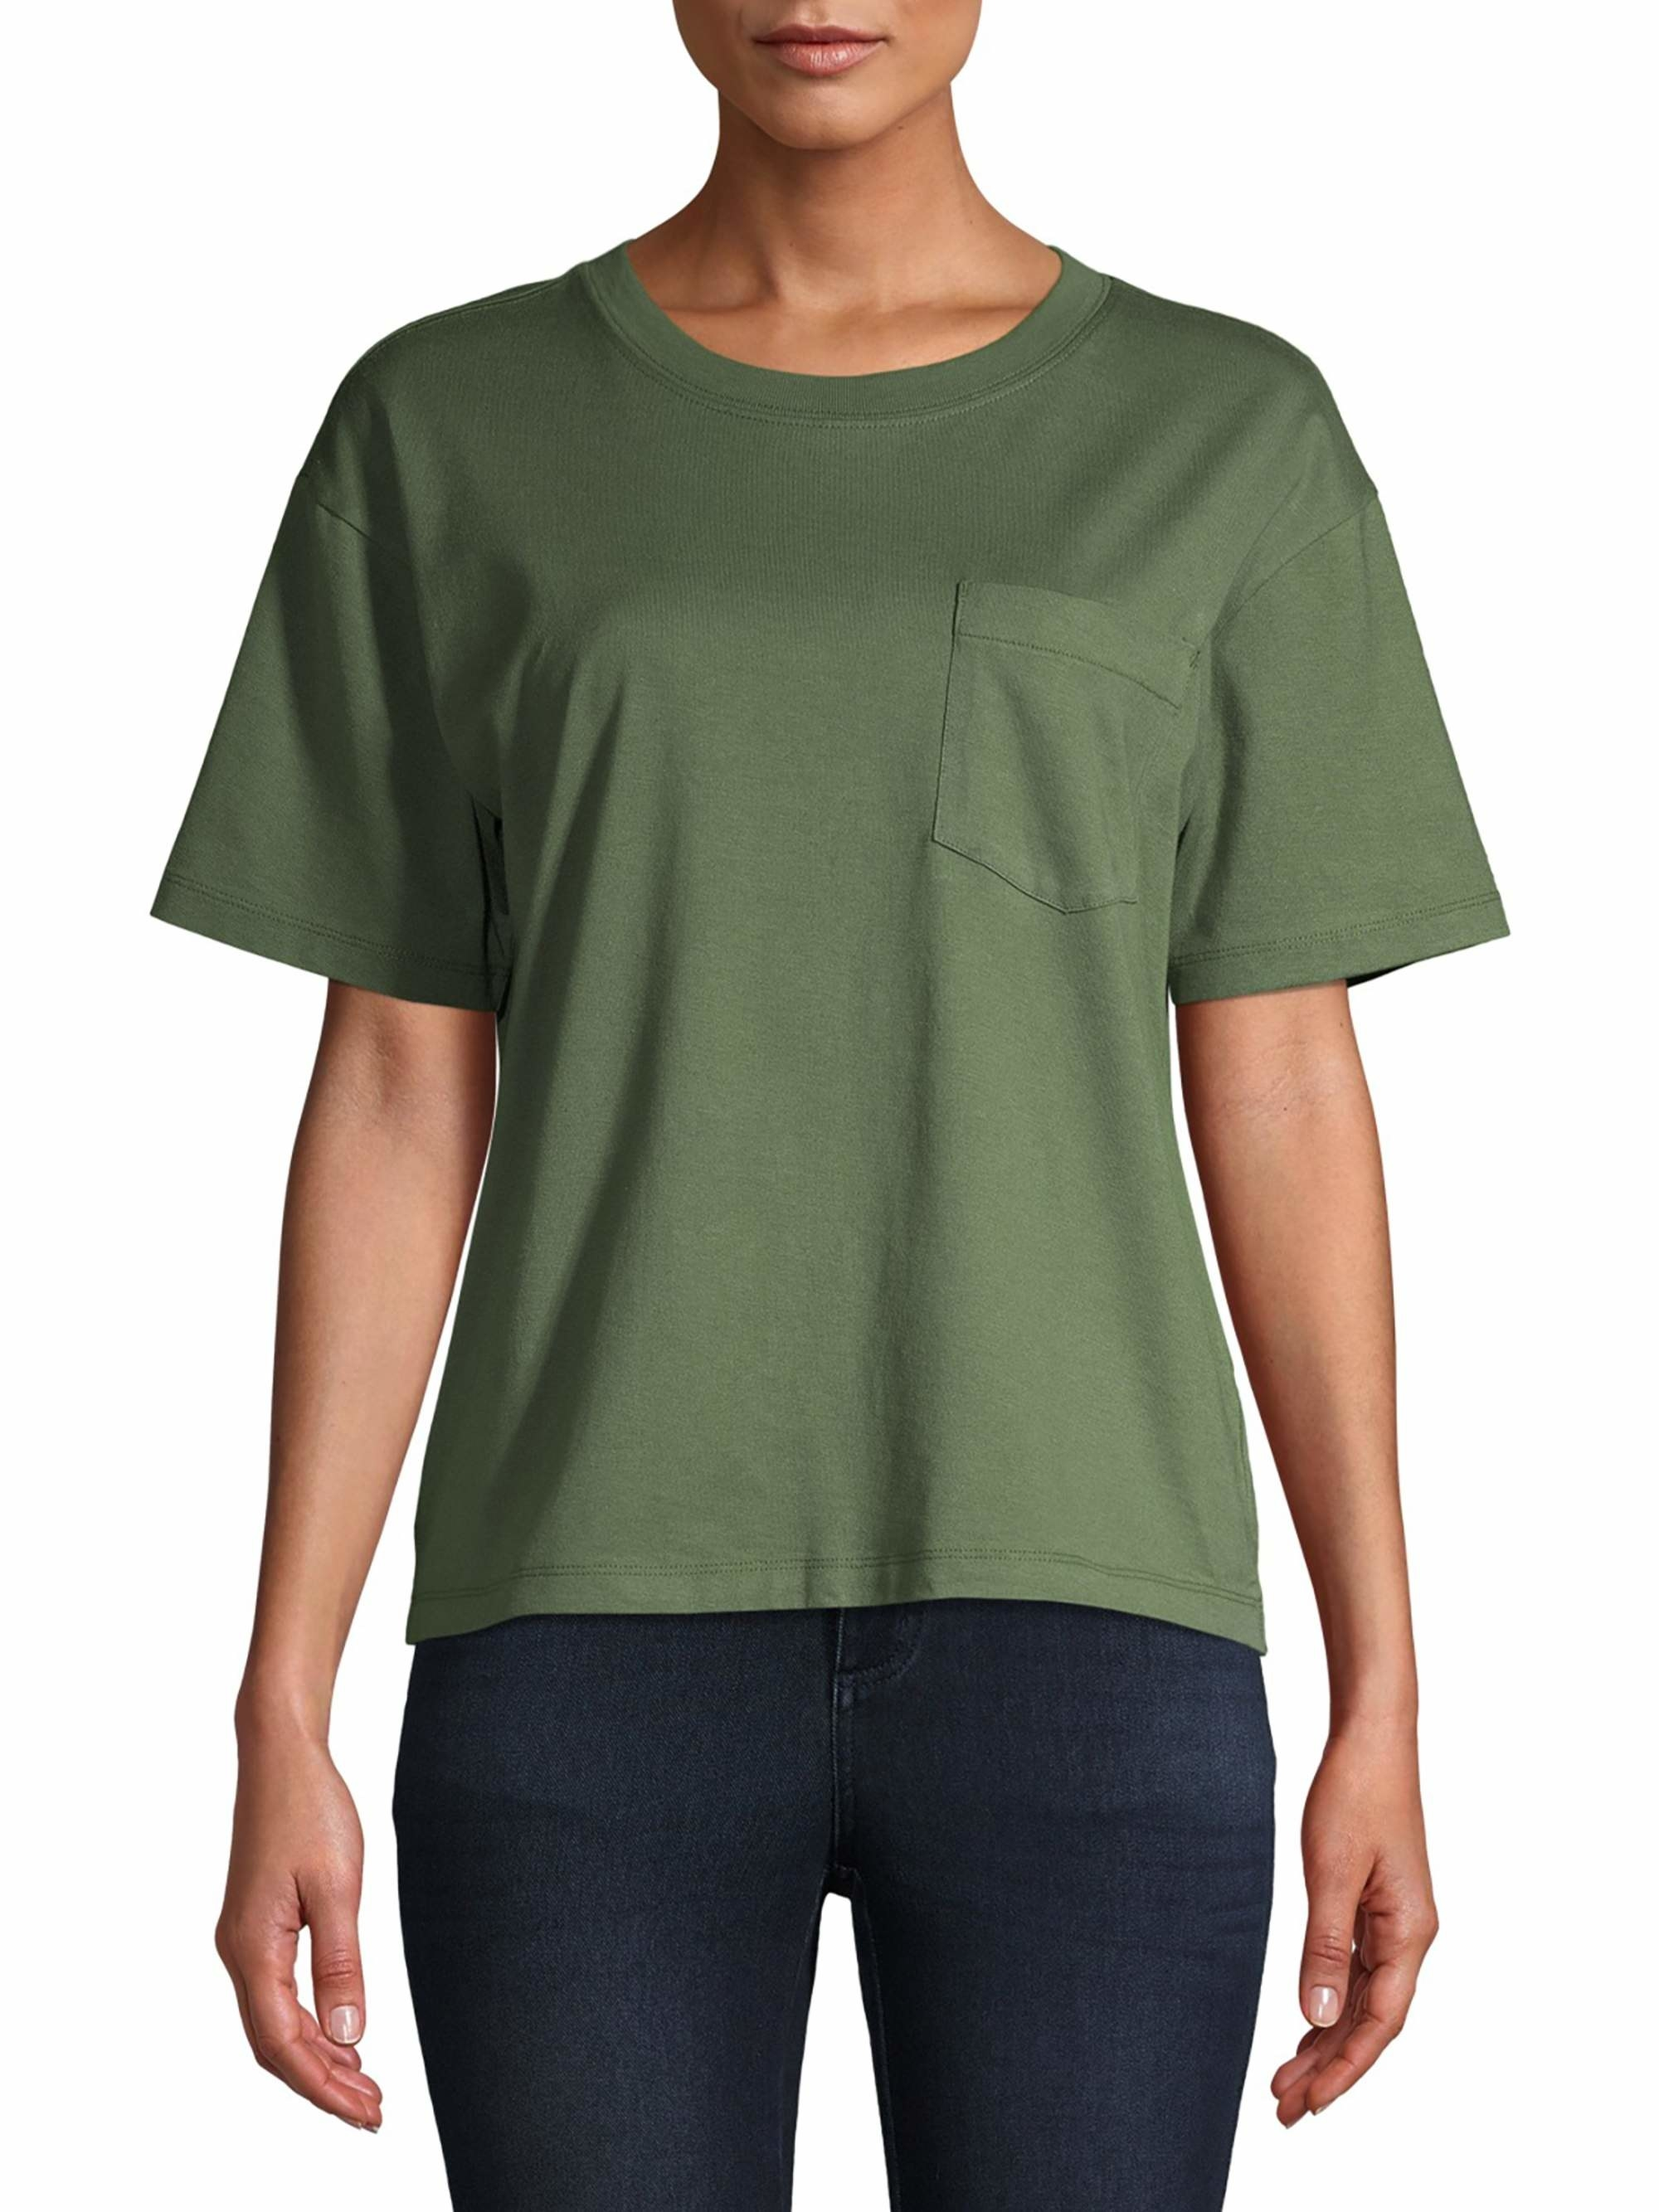 person wearing olive green t shirt with dark jeans